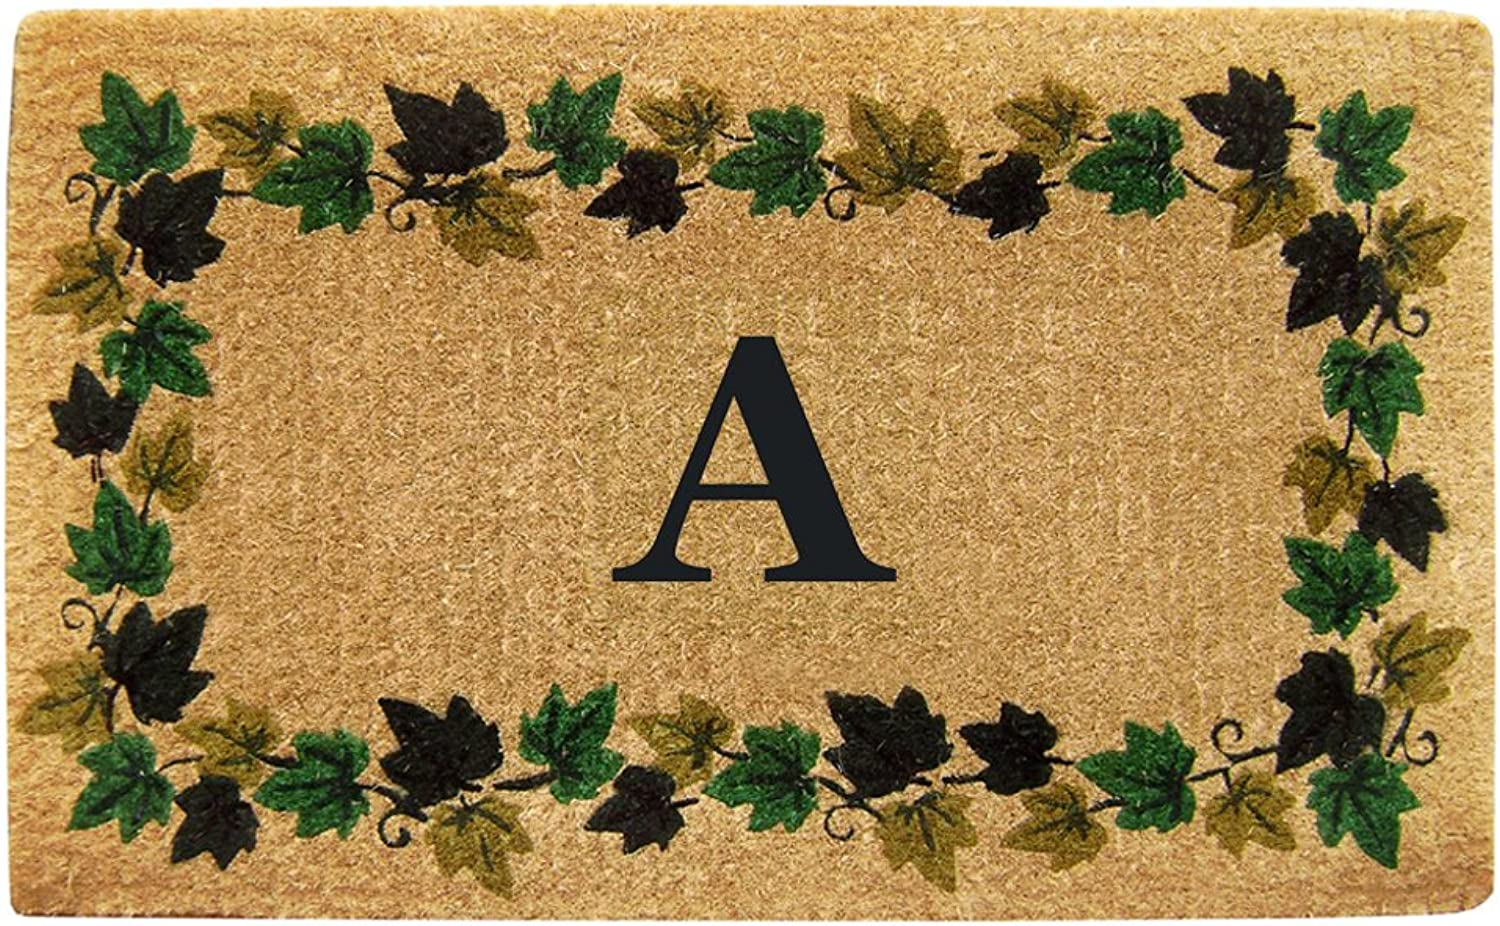 Nedia Home Heavy Duty Coco Mat with Ivy Vine Border, 22 by 36-Inch, Monogrammed A